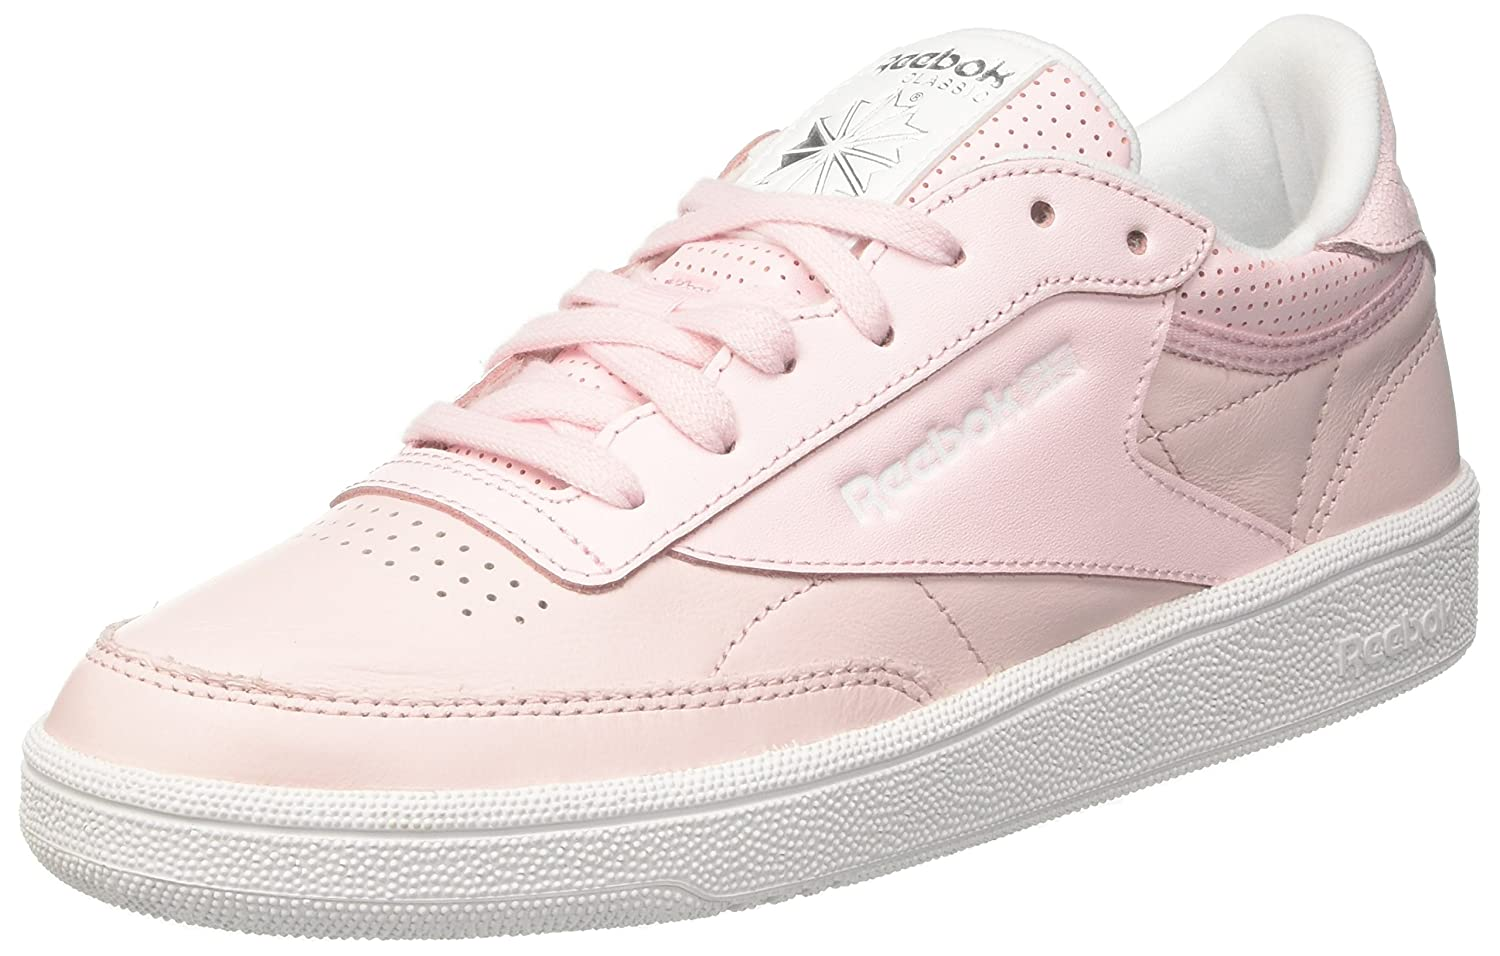 336c43abc6a34 Amazon.com  Reebok Club C 85 Womens Sneakers Pink  Clothing